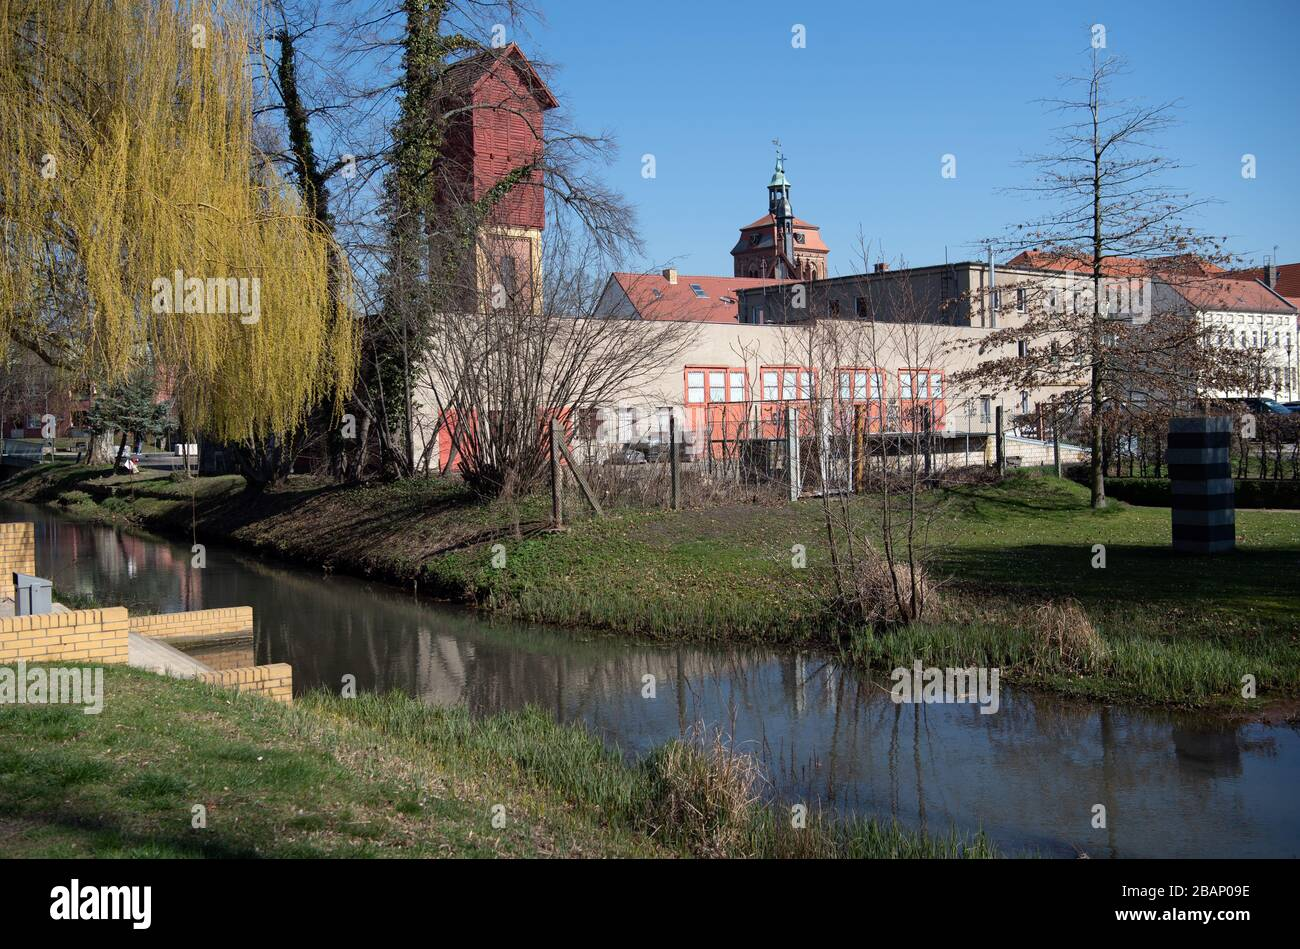 Luckenwalde, Germany. 24th Mar, 2020. The Nuthepark with the corresponding Nuthe. In the background you can see the towers of St. Johannis and Marktirche. The water has its source in Niedergörsdorf in Brandenburg and flows into the Potsdam Havel after about 60 kilometres. Credit: Soeren Stache/dpa-Zentralbild/ZB/dpa/Alamy Live News Stock Photo